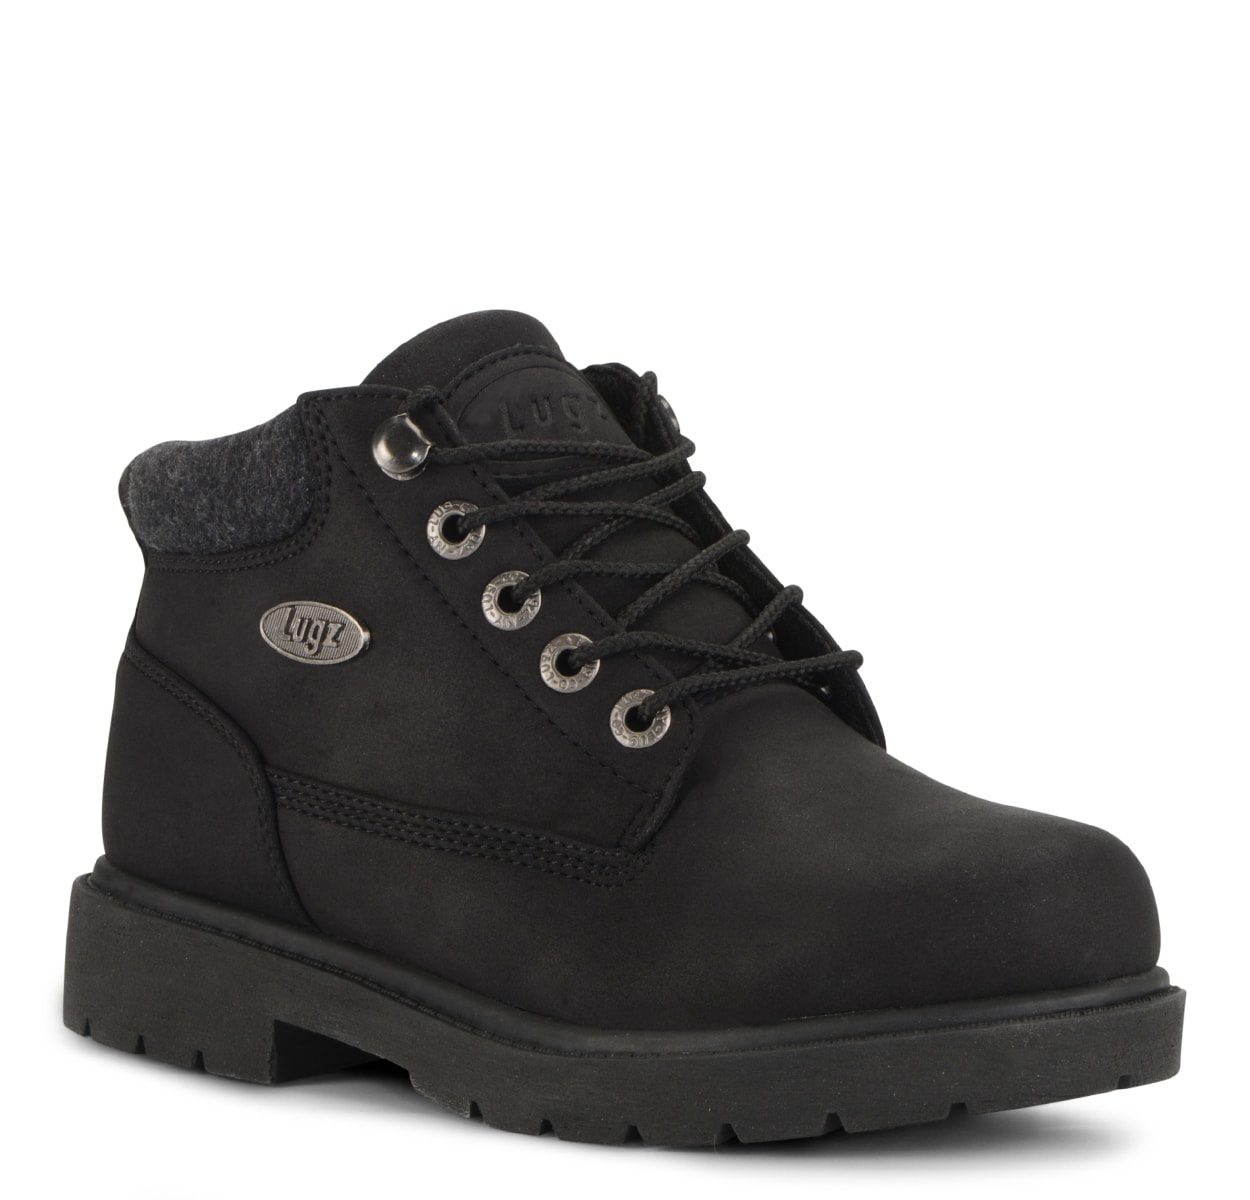 Women S Lugz Boots And Shoes